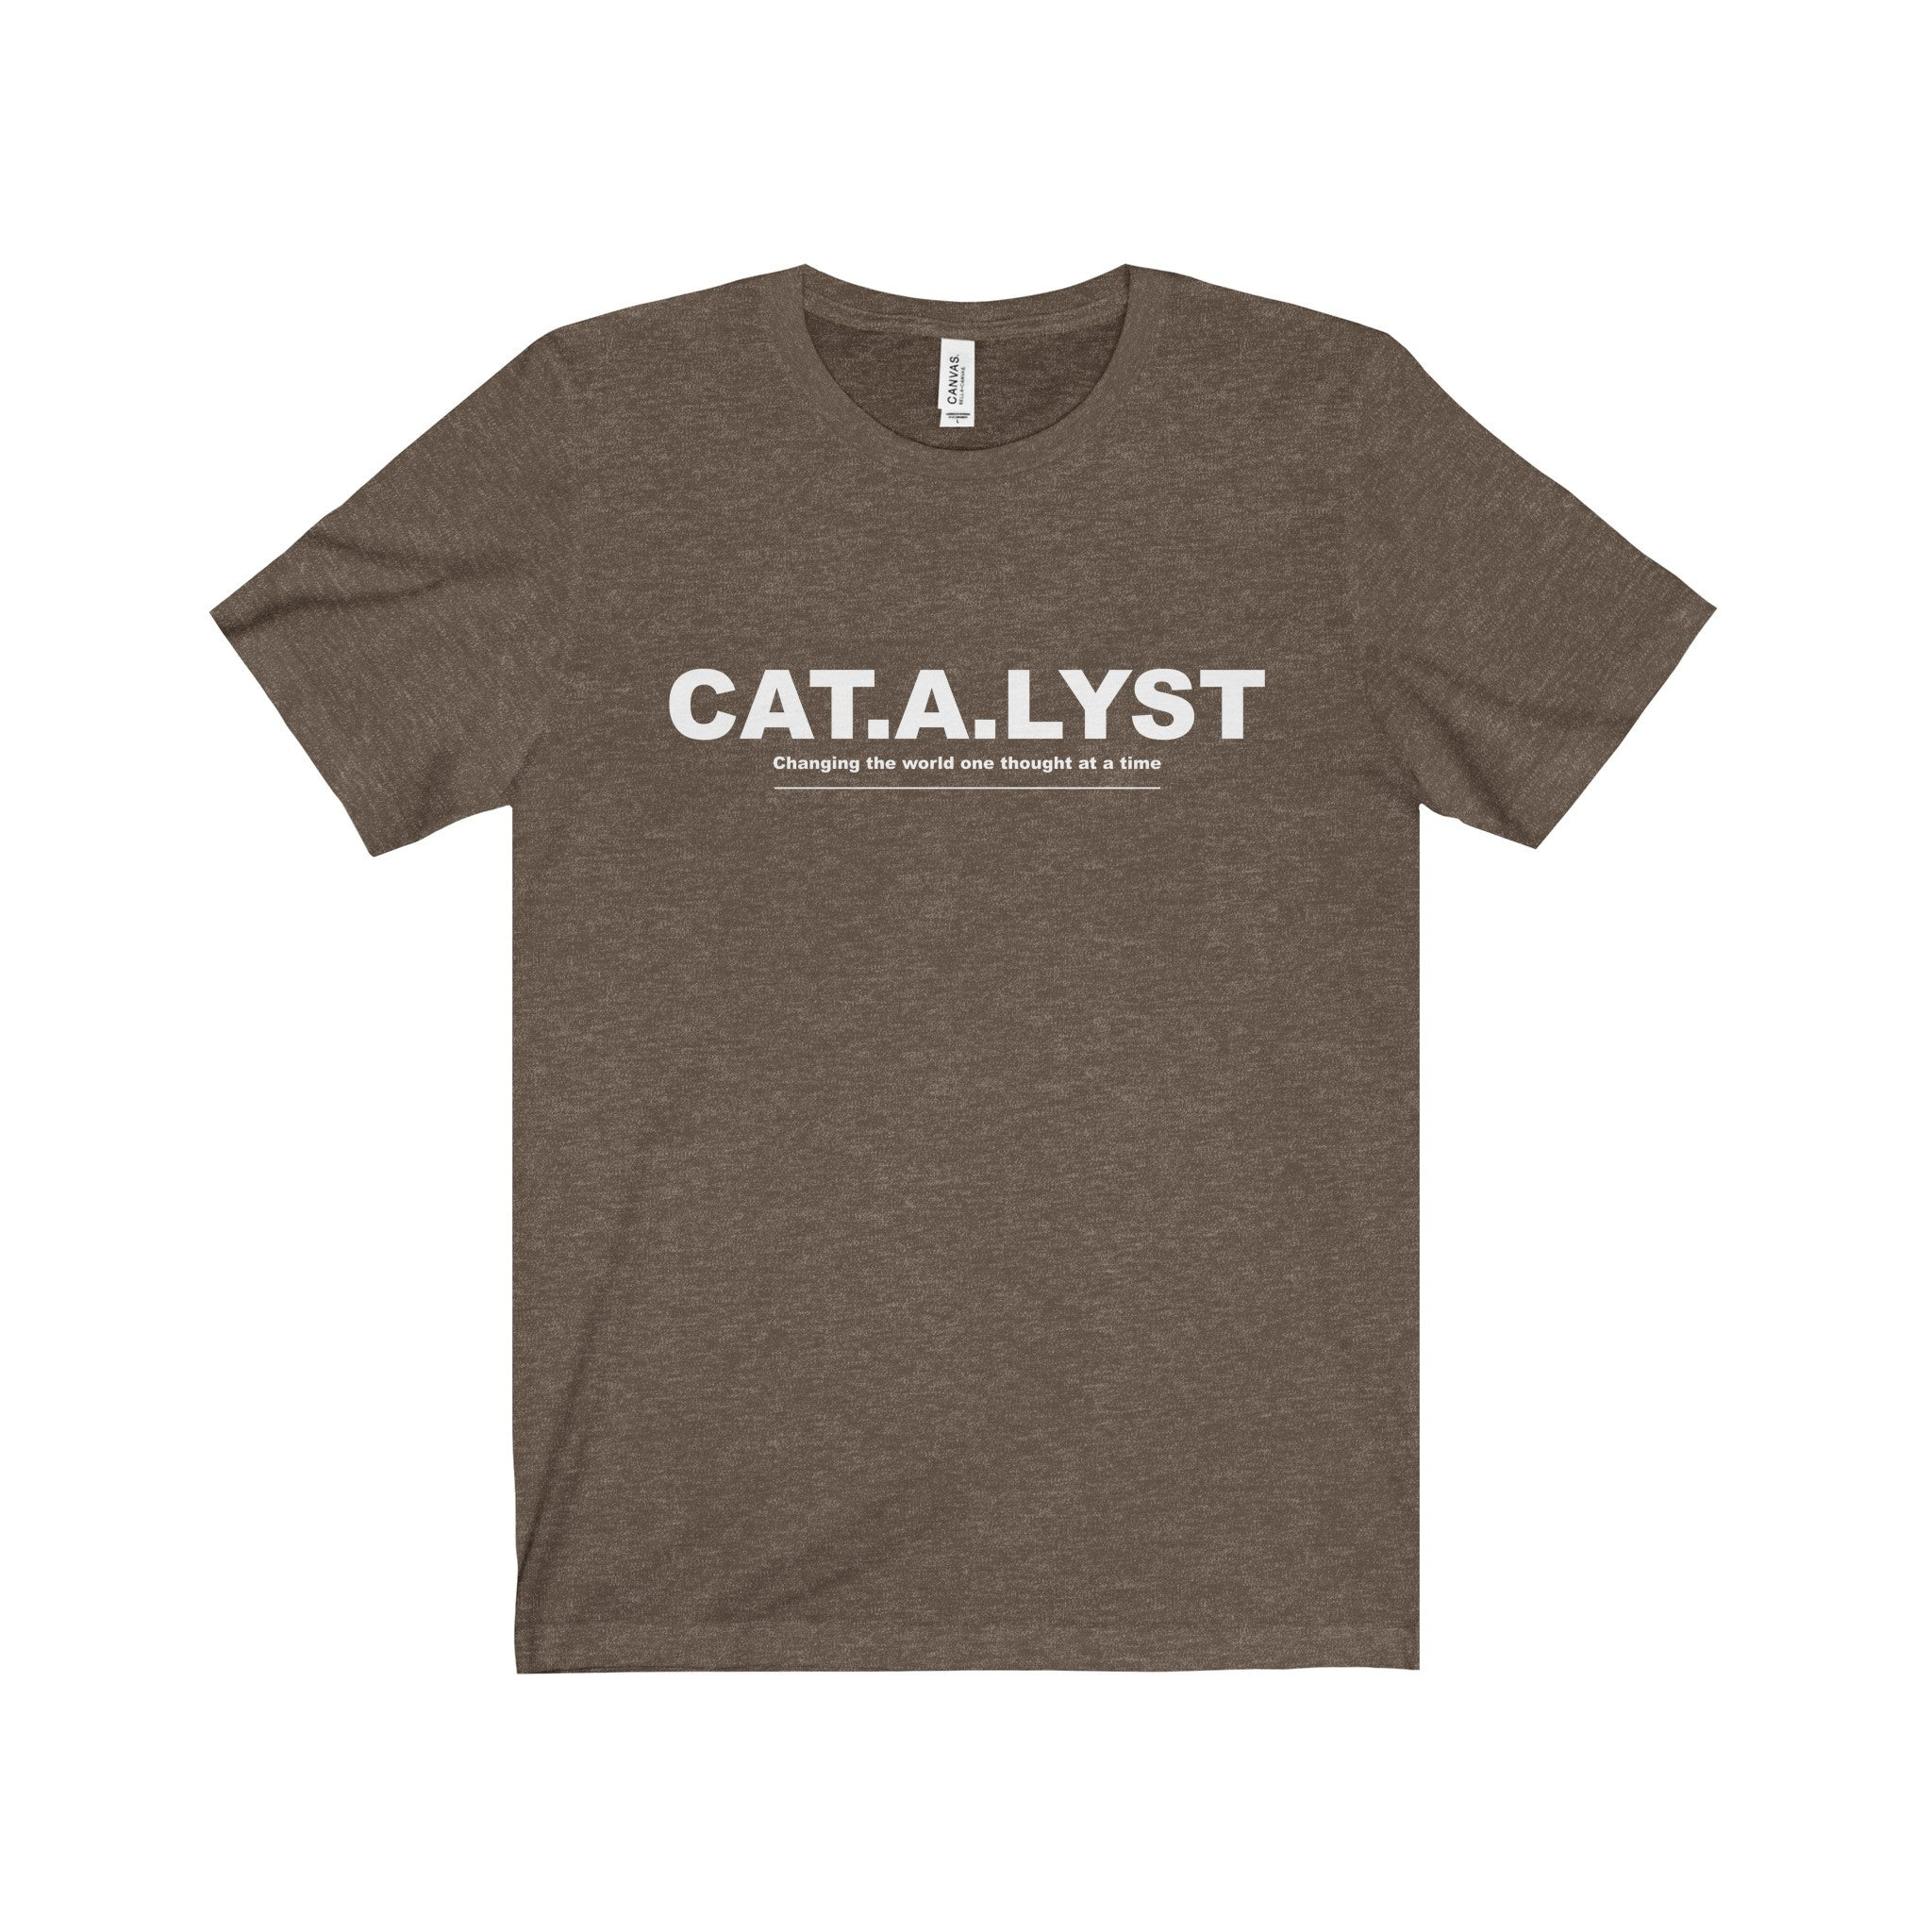 CATALYST White Letter Tee (5 colors available)